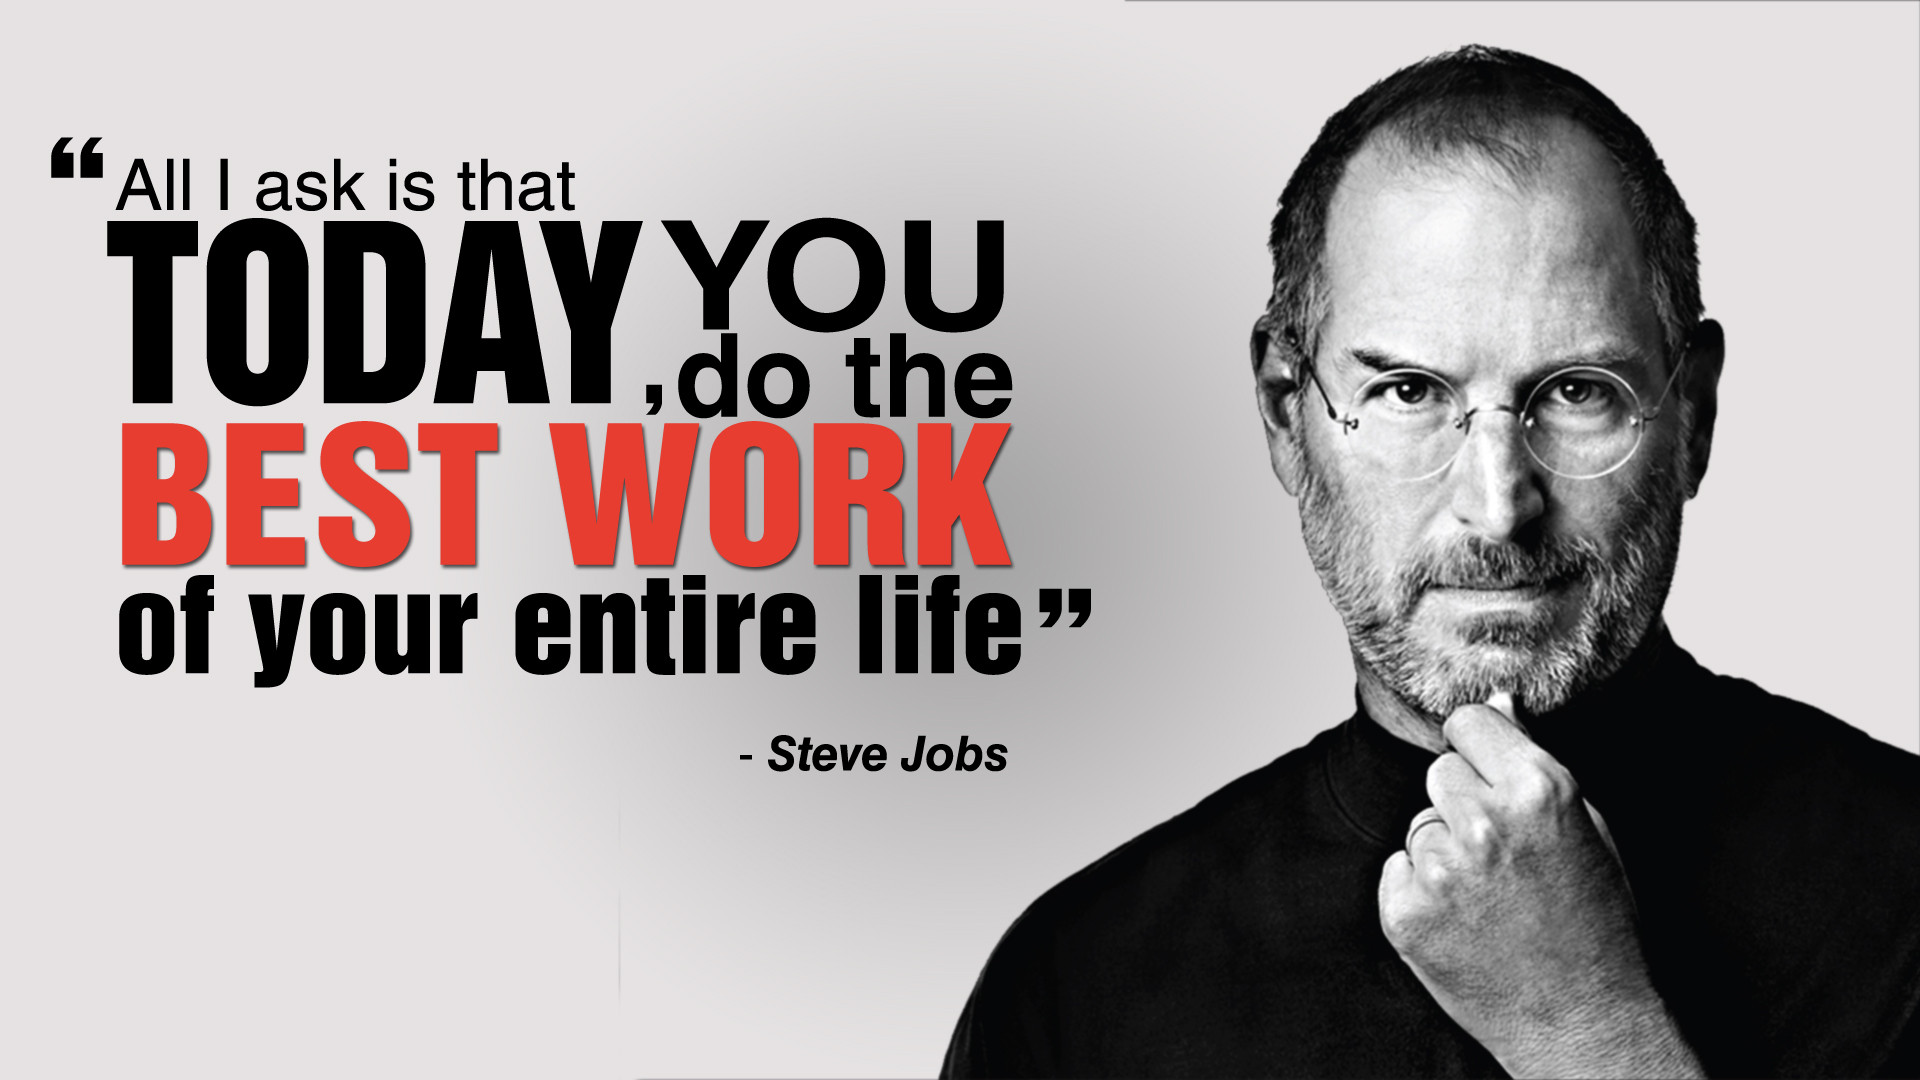 Steve Jobs Quotes Your Time Is Limited Wallpaper Download Steve Jobs Quotes Hd Wallpapers Gallery